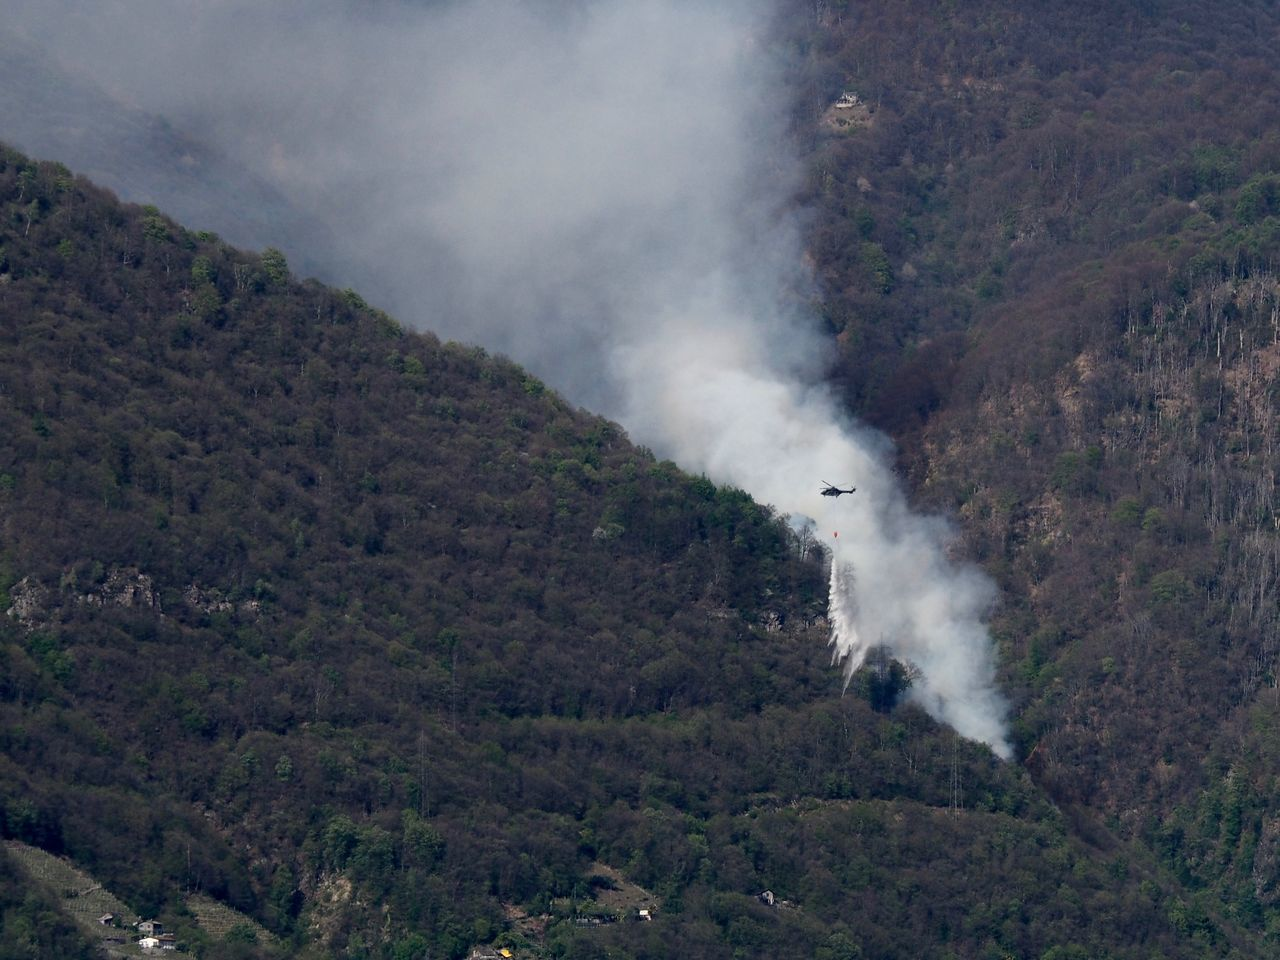 Helicopter dropping water on a forest fire above Gordola, Ticino, Switzerland Beauty In Nature Day Fire Fire Fighters Fire Fighting Equipment Forest Forest Fire Helicopter Landscape Mountain Nature No People Outdoors Scenics Tree Water Wild Fire